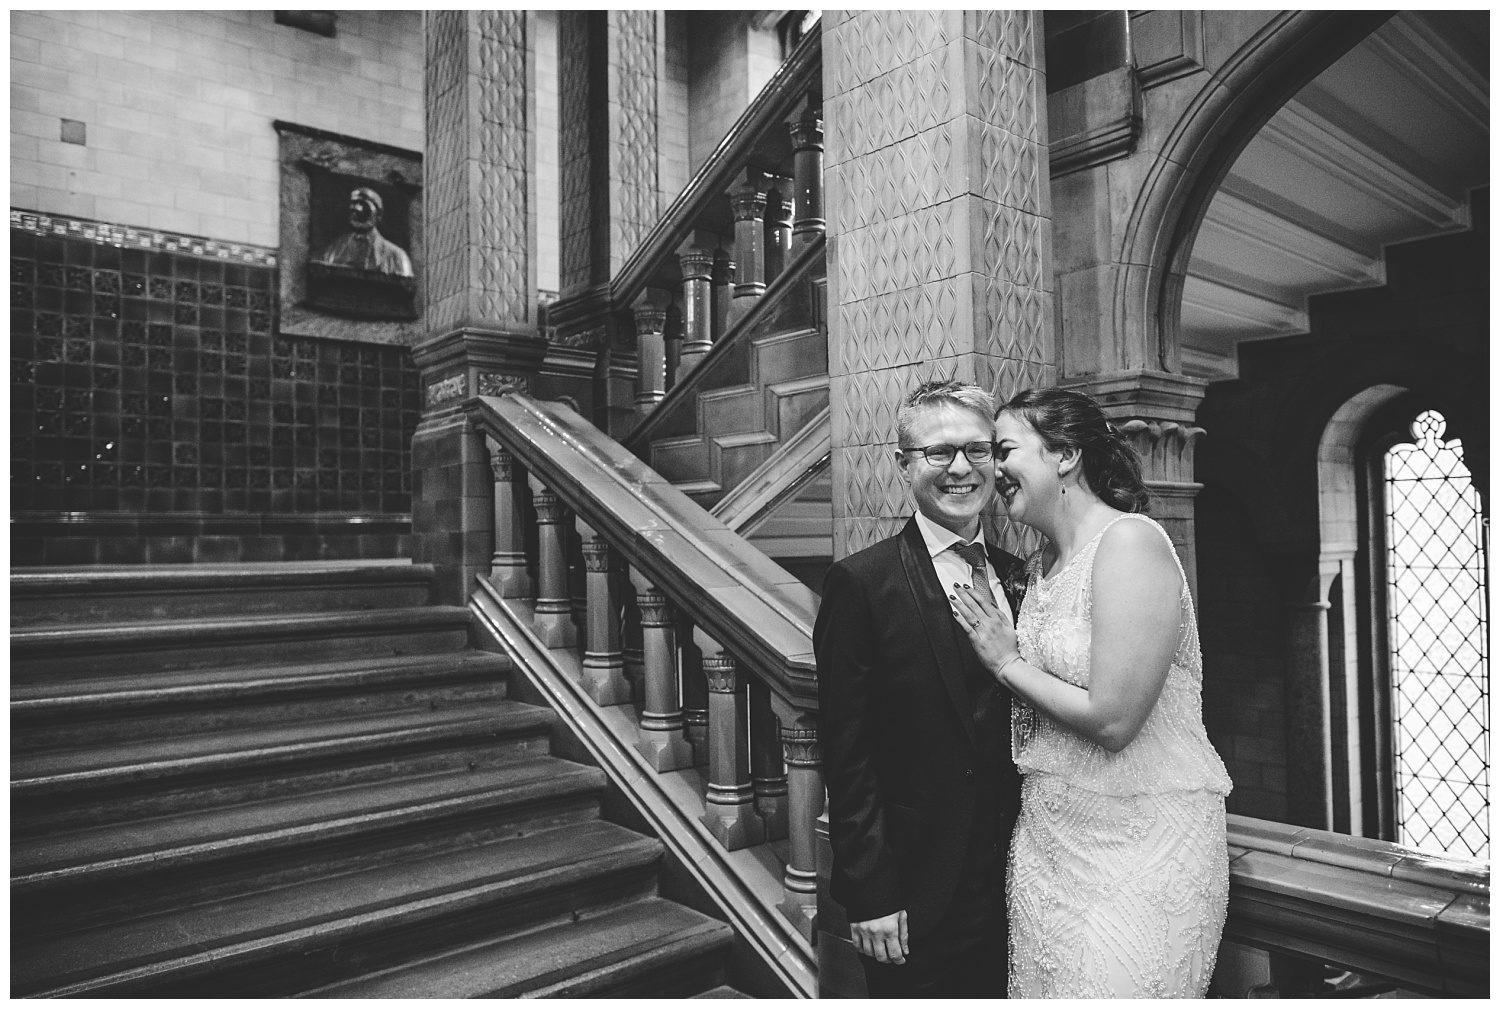 Victoria Gallery & Museum wedding